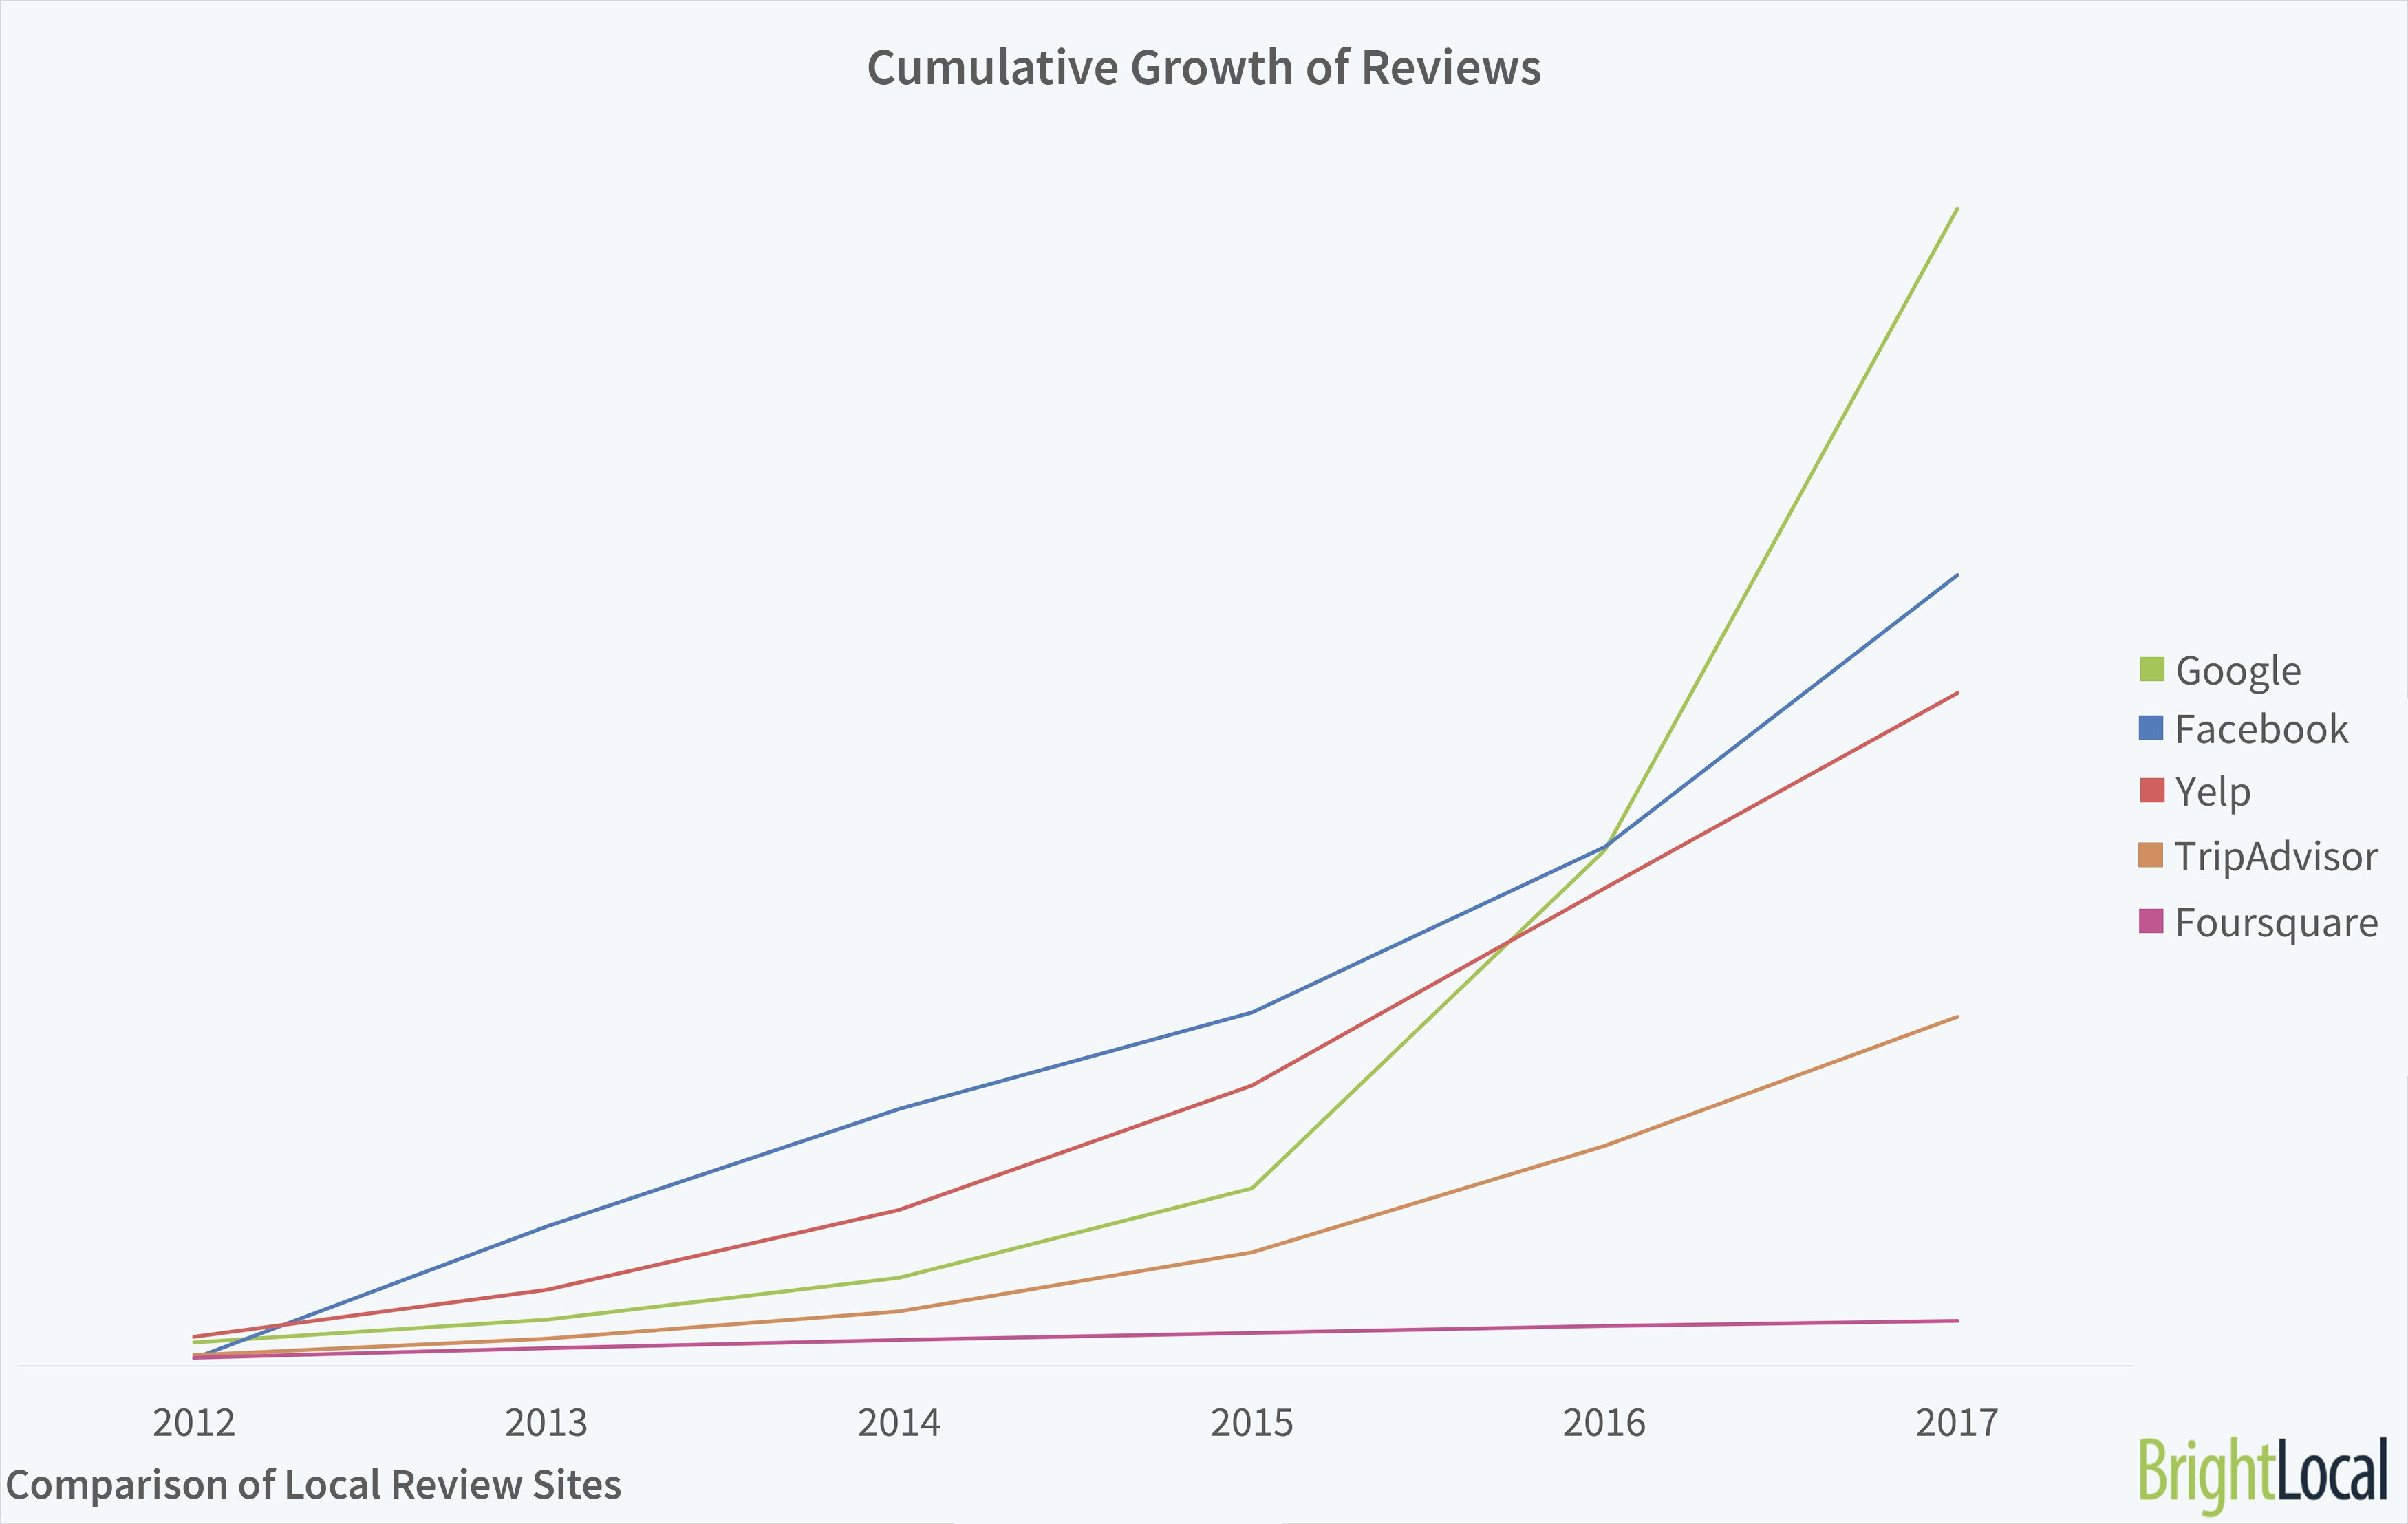 Cumulative Growth of Reviews